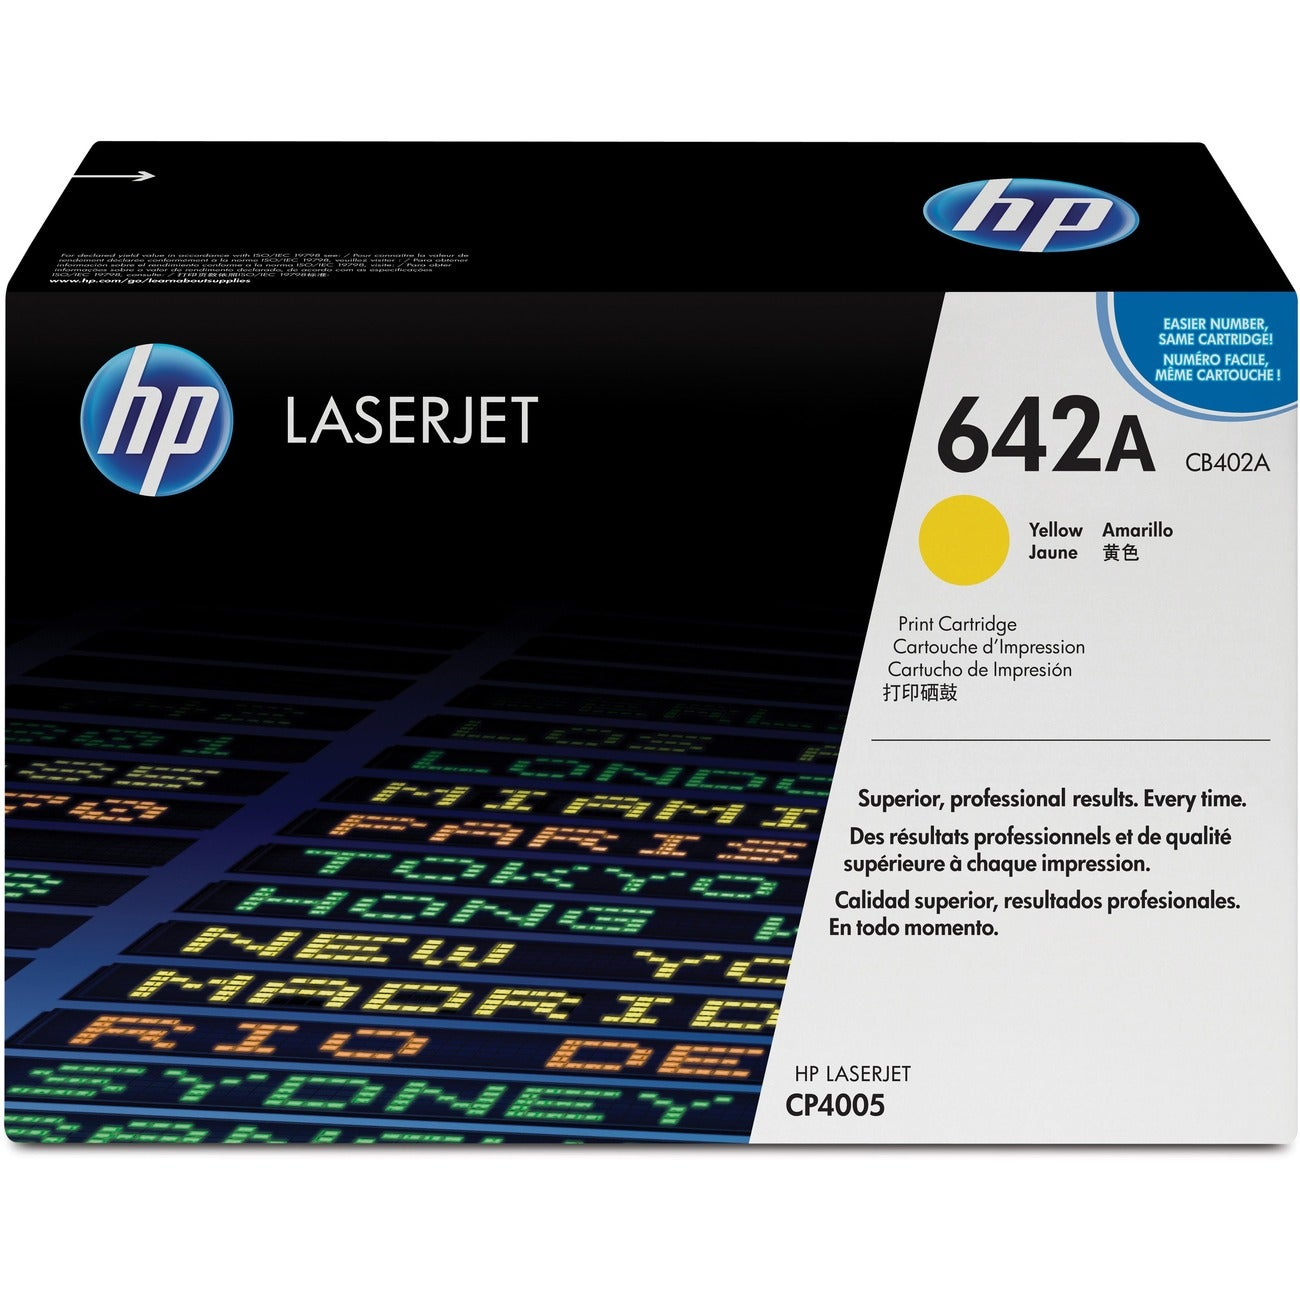 HP Yellow Toner Cartridge For LaserJet CP4005, CP4005n and CP4005dn Printers